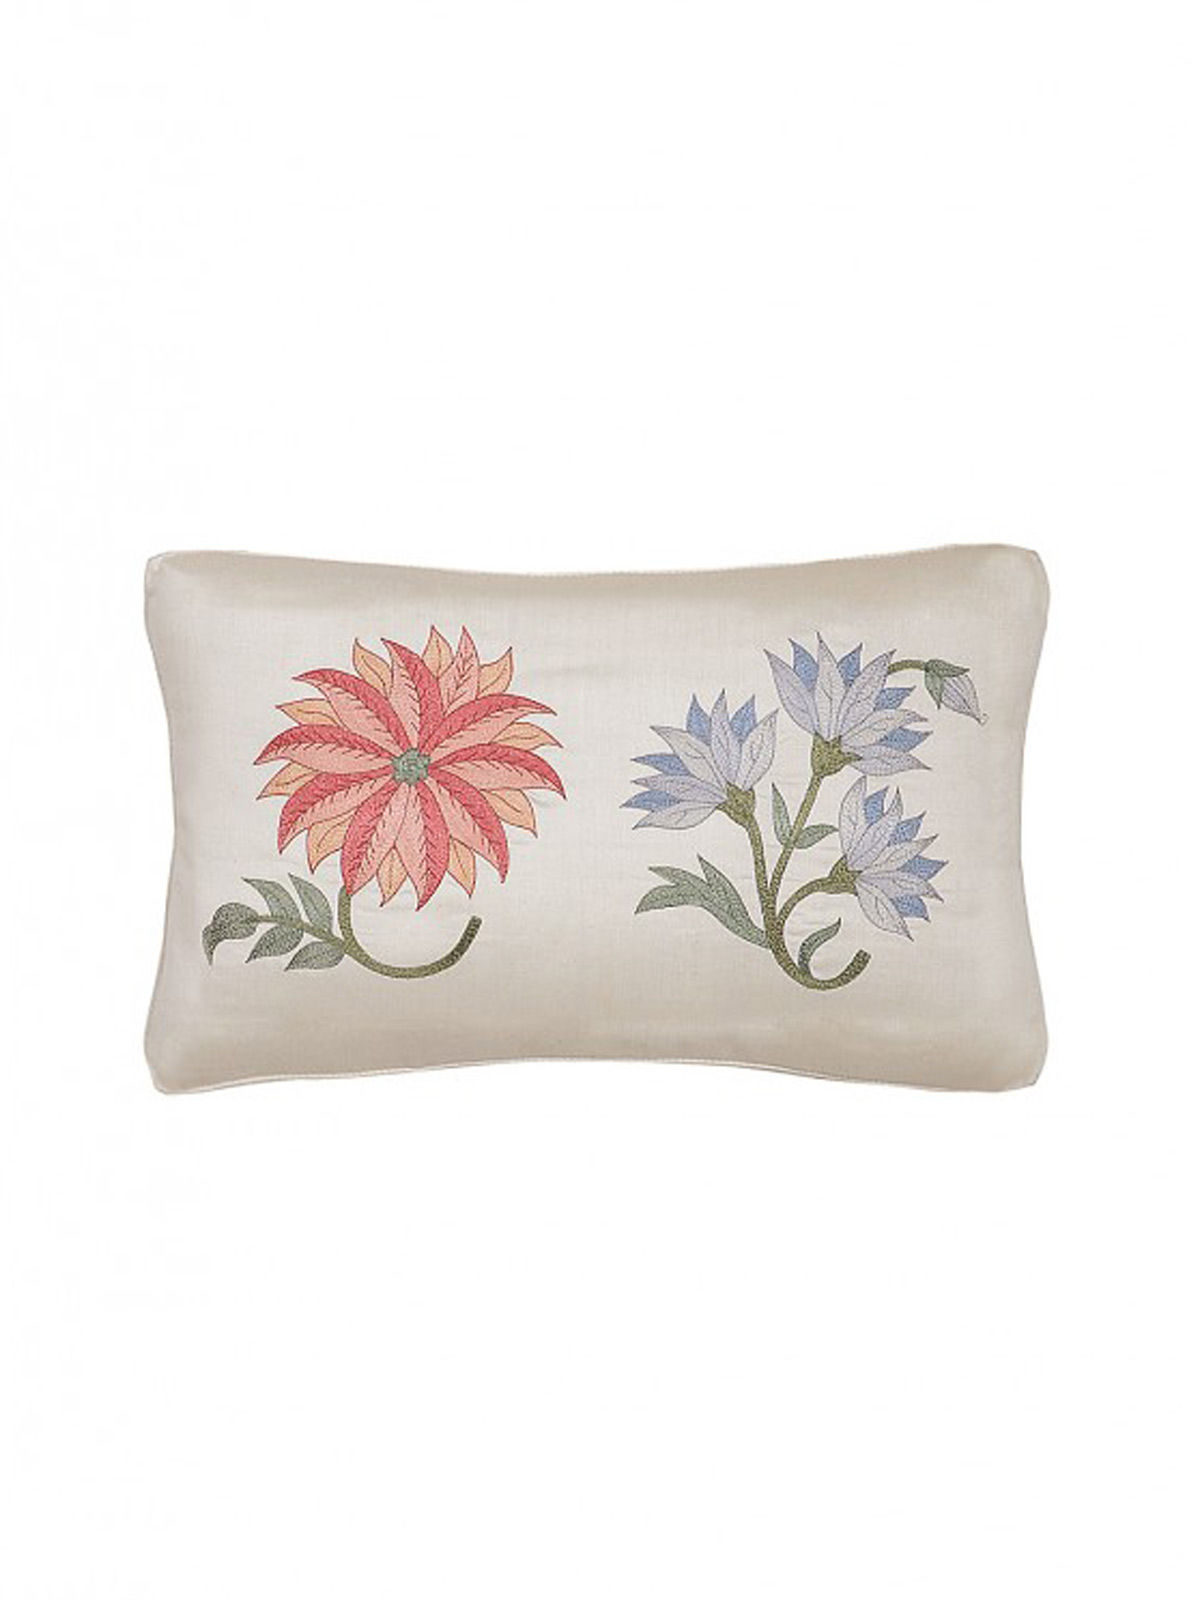 Buy Indian Cushion Covers line Exclusive at Indian August